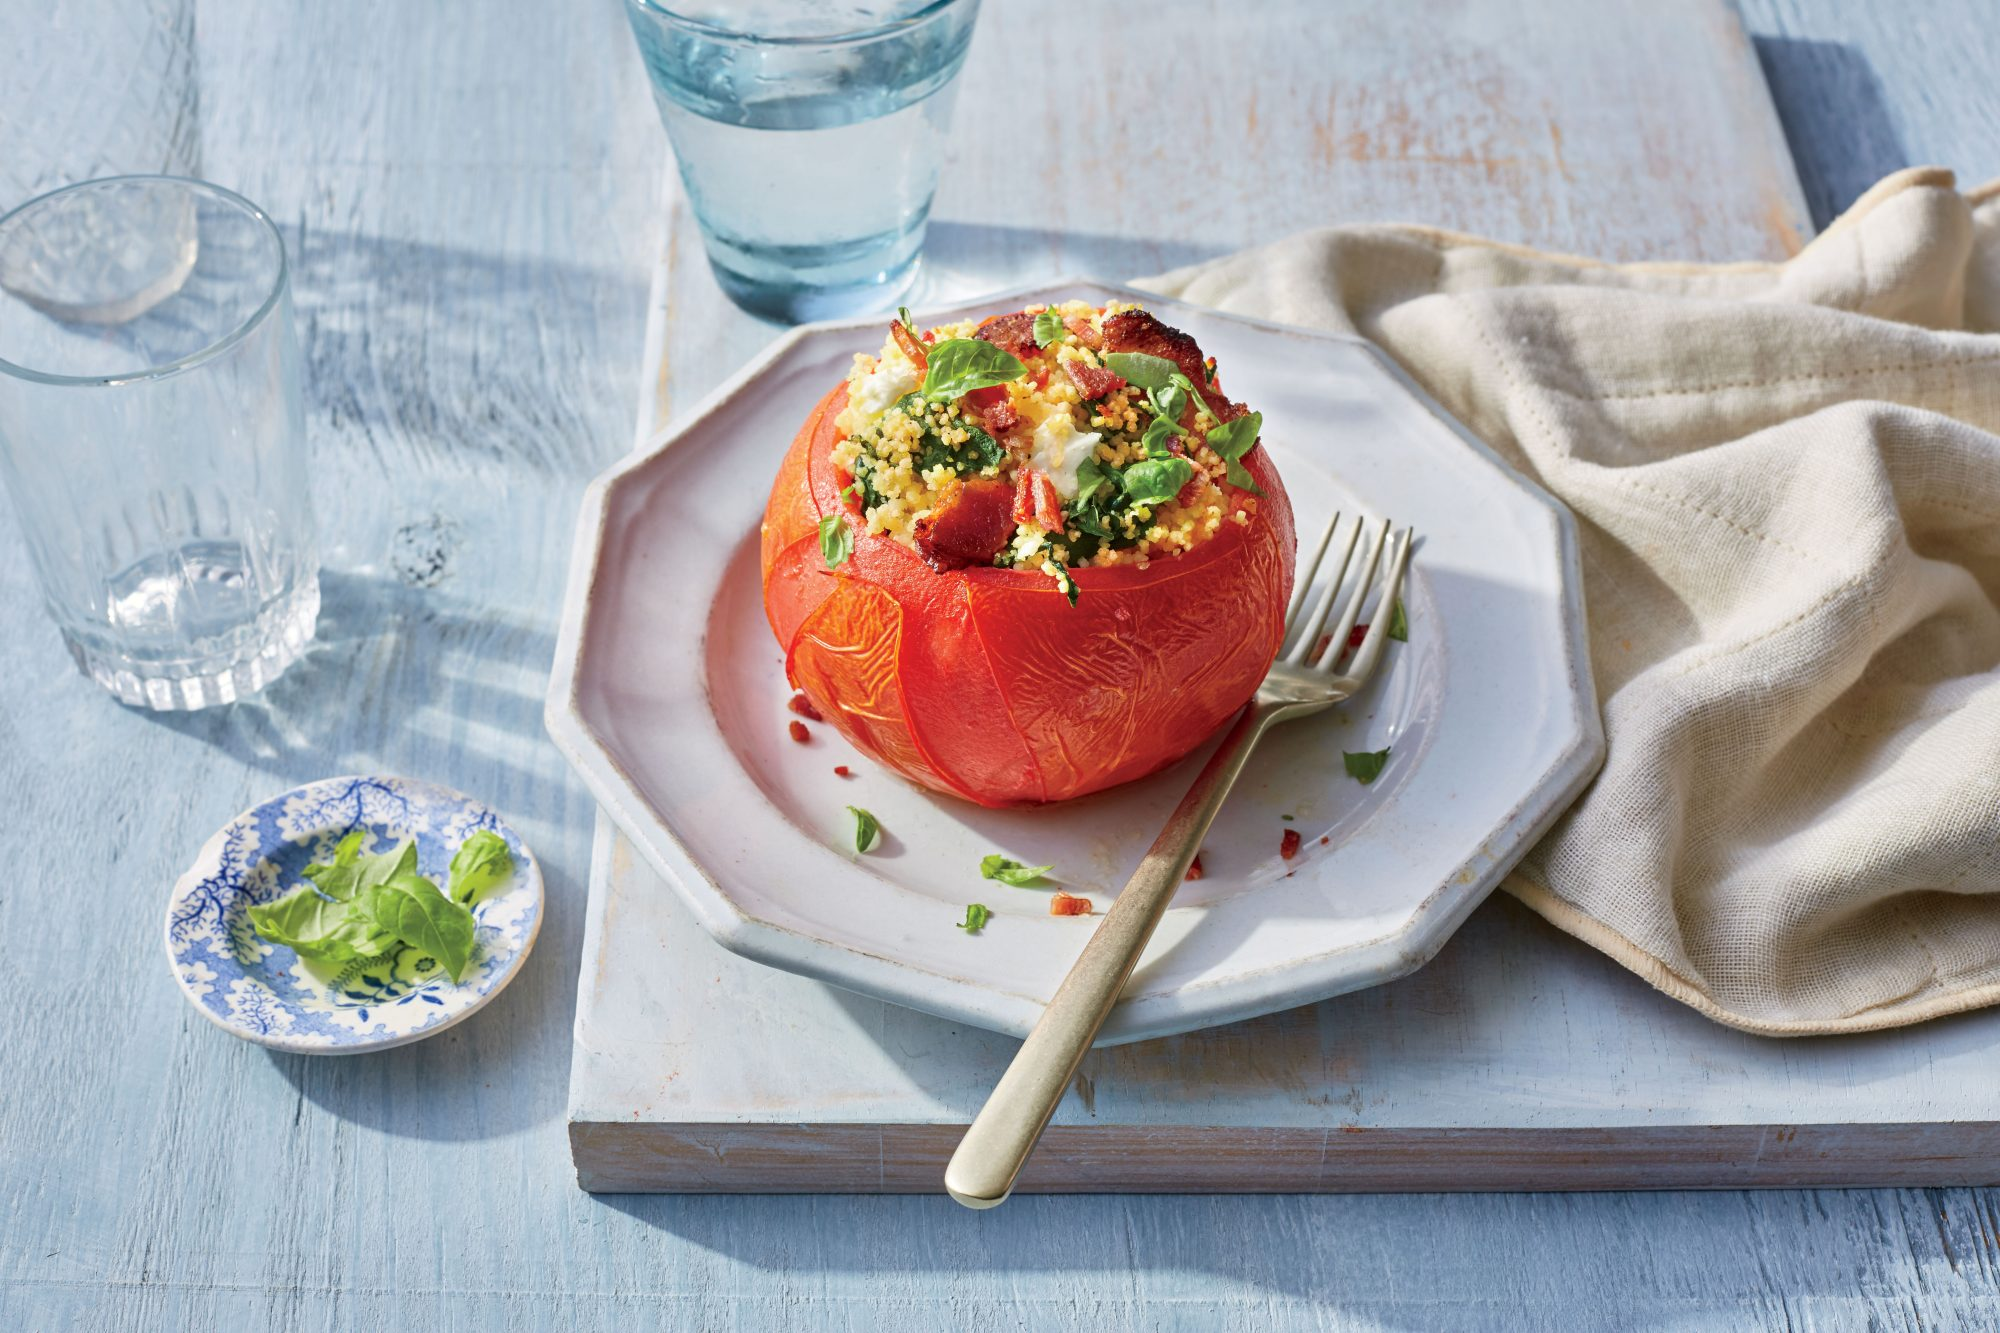 Bacon-Spinach-and-Couscous Stuffed Tomatoes Recipe